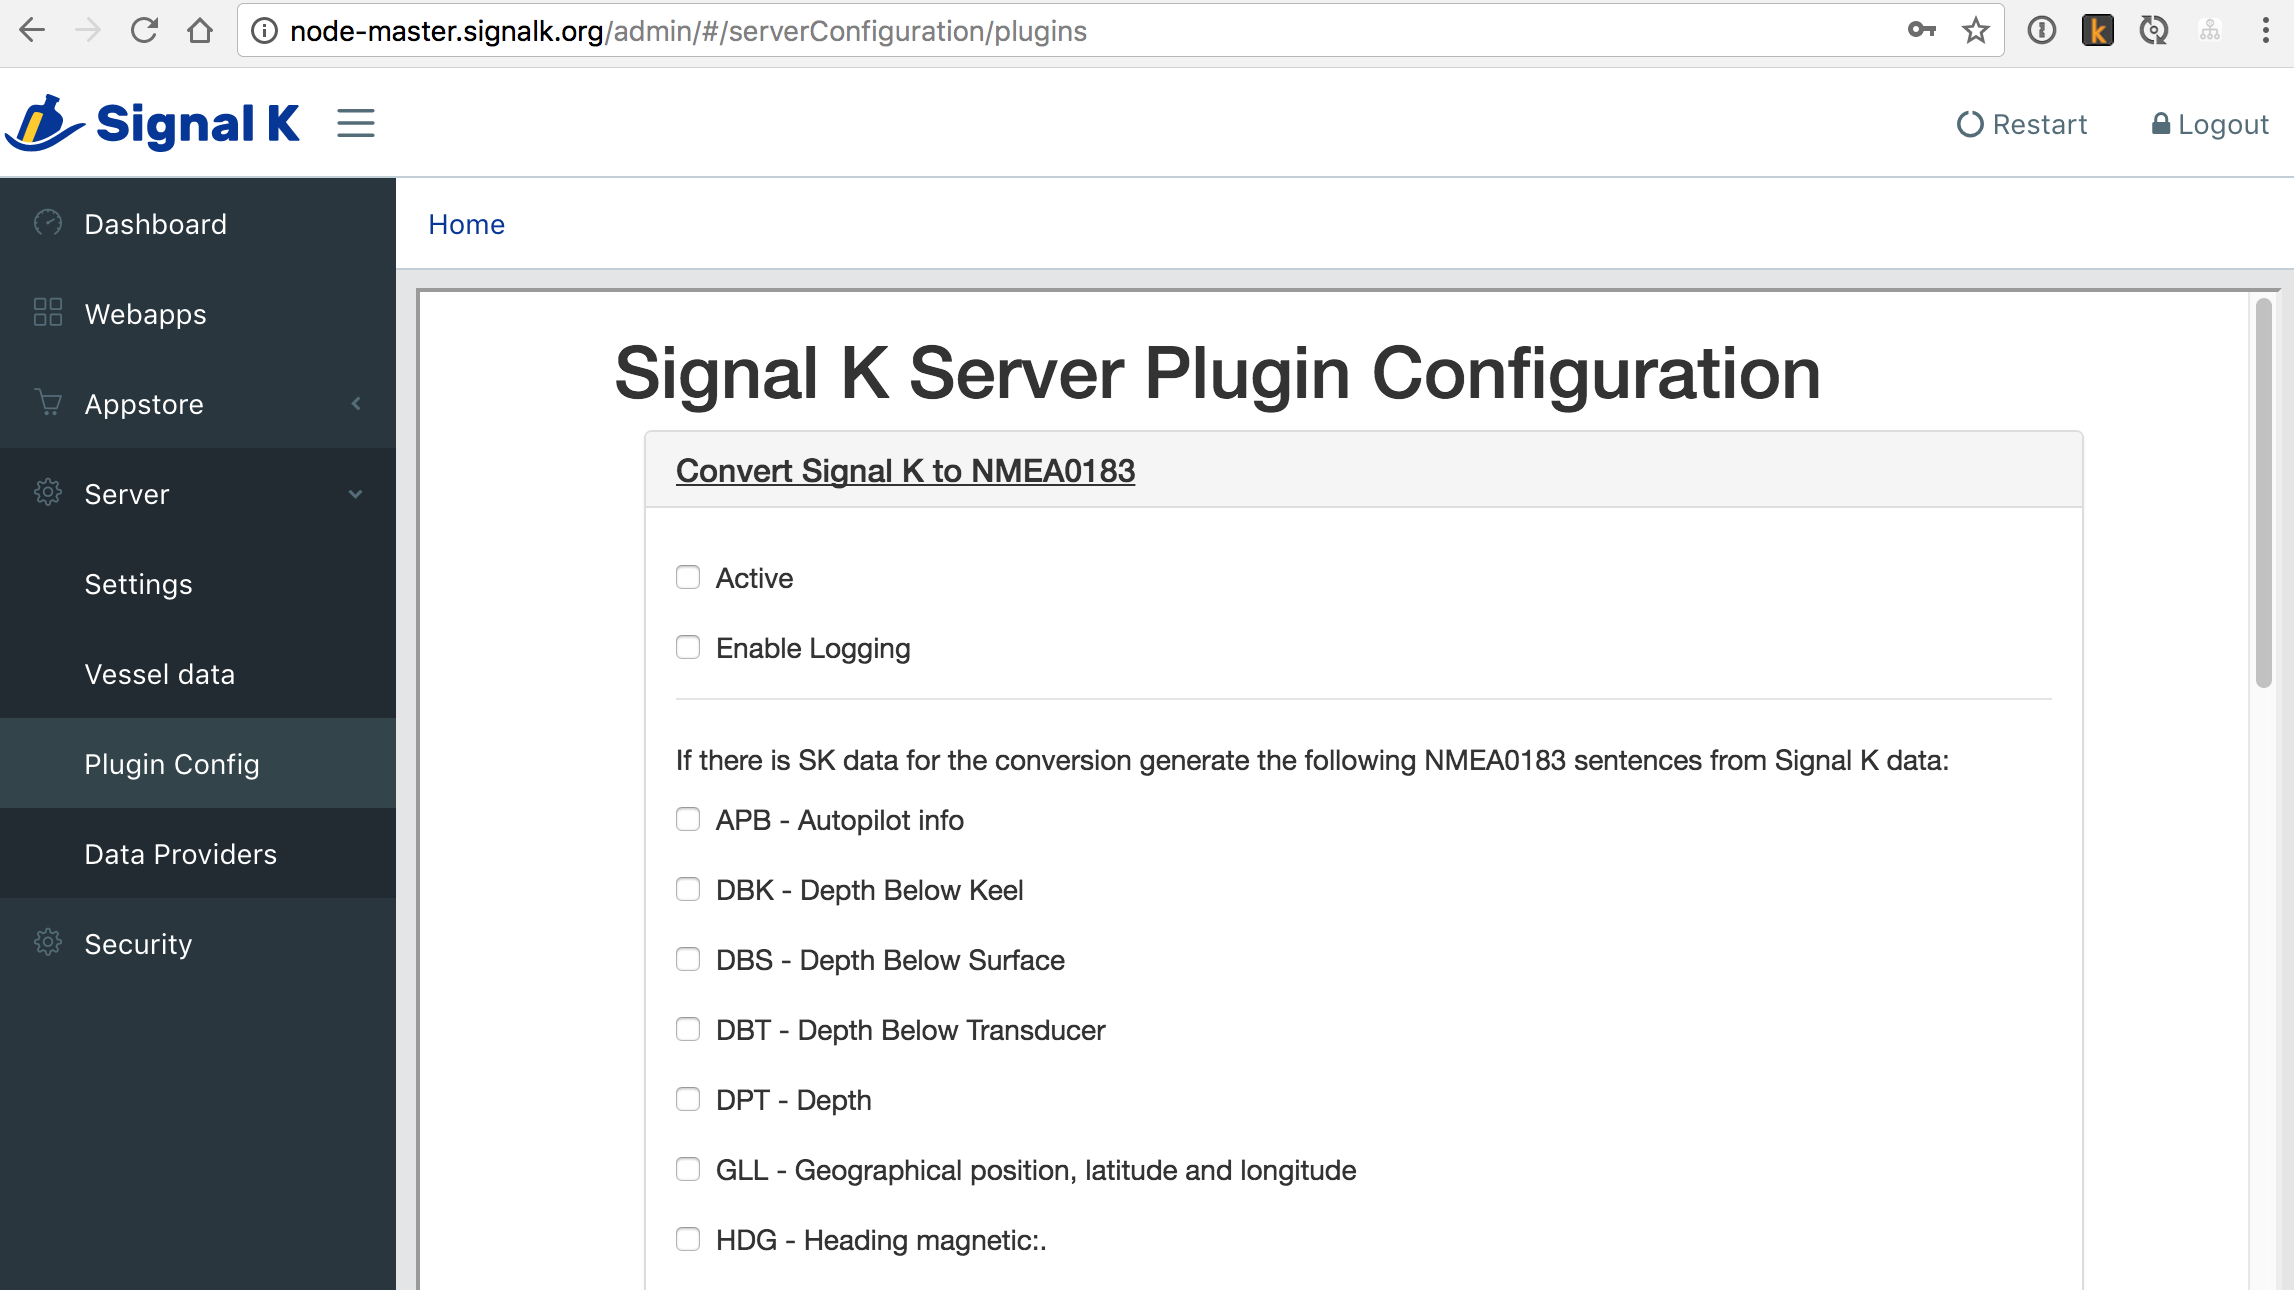 signalk-server-node/SERVERPLUGINS md at master · SignalK